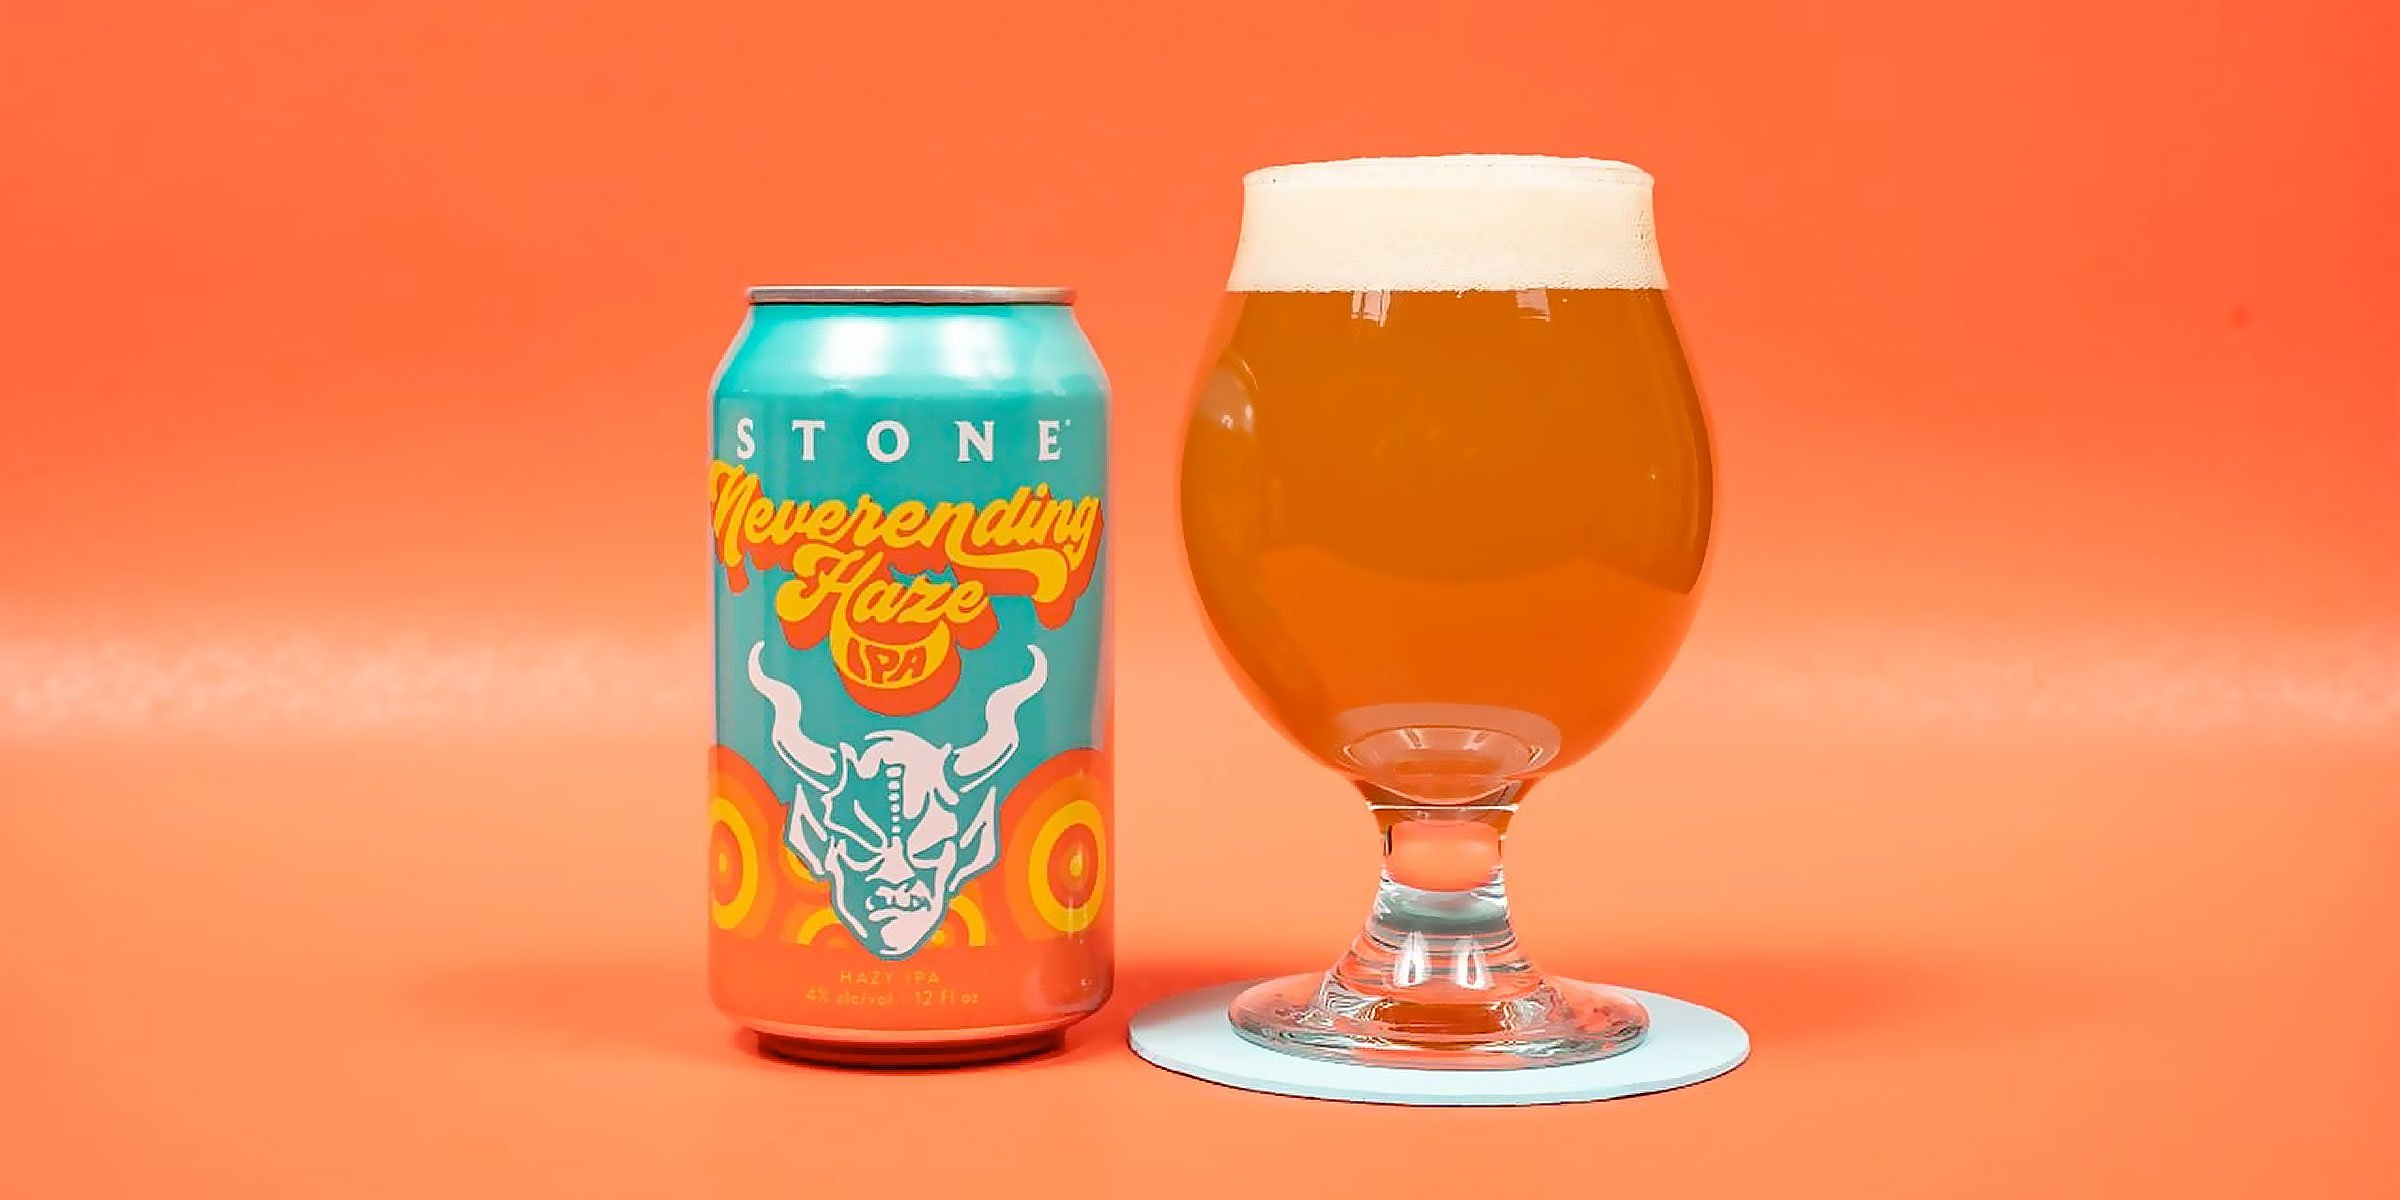 """After a pilot launch in California, Stone Brewing is now releasing its new """"Neverending Haze"""" Session IPA nationwide this week."""